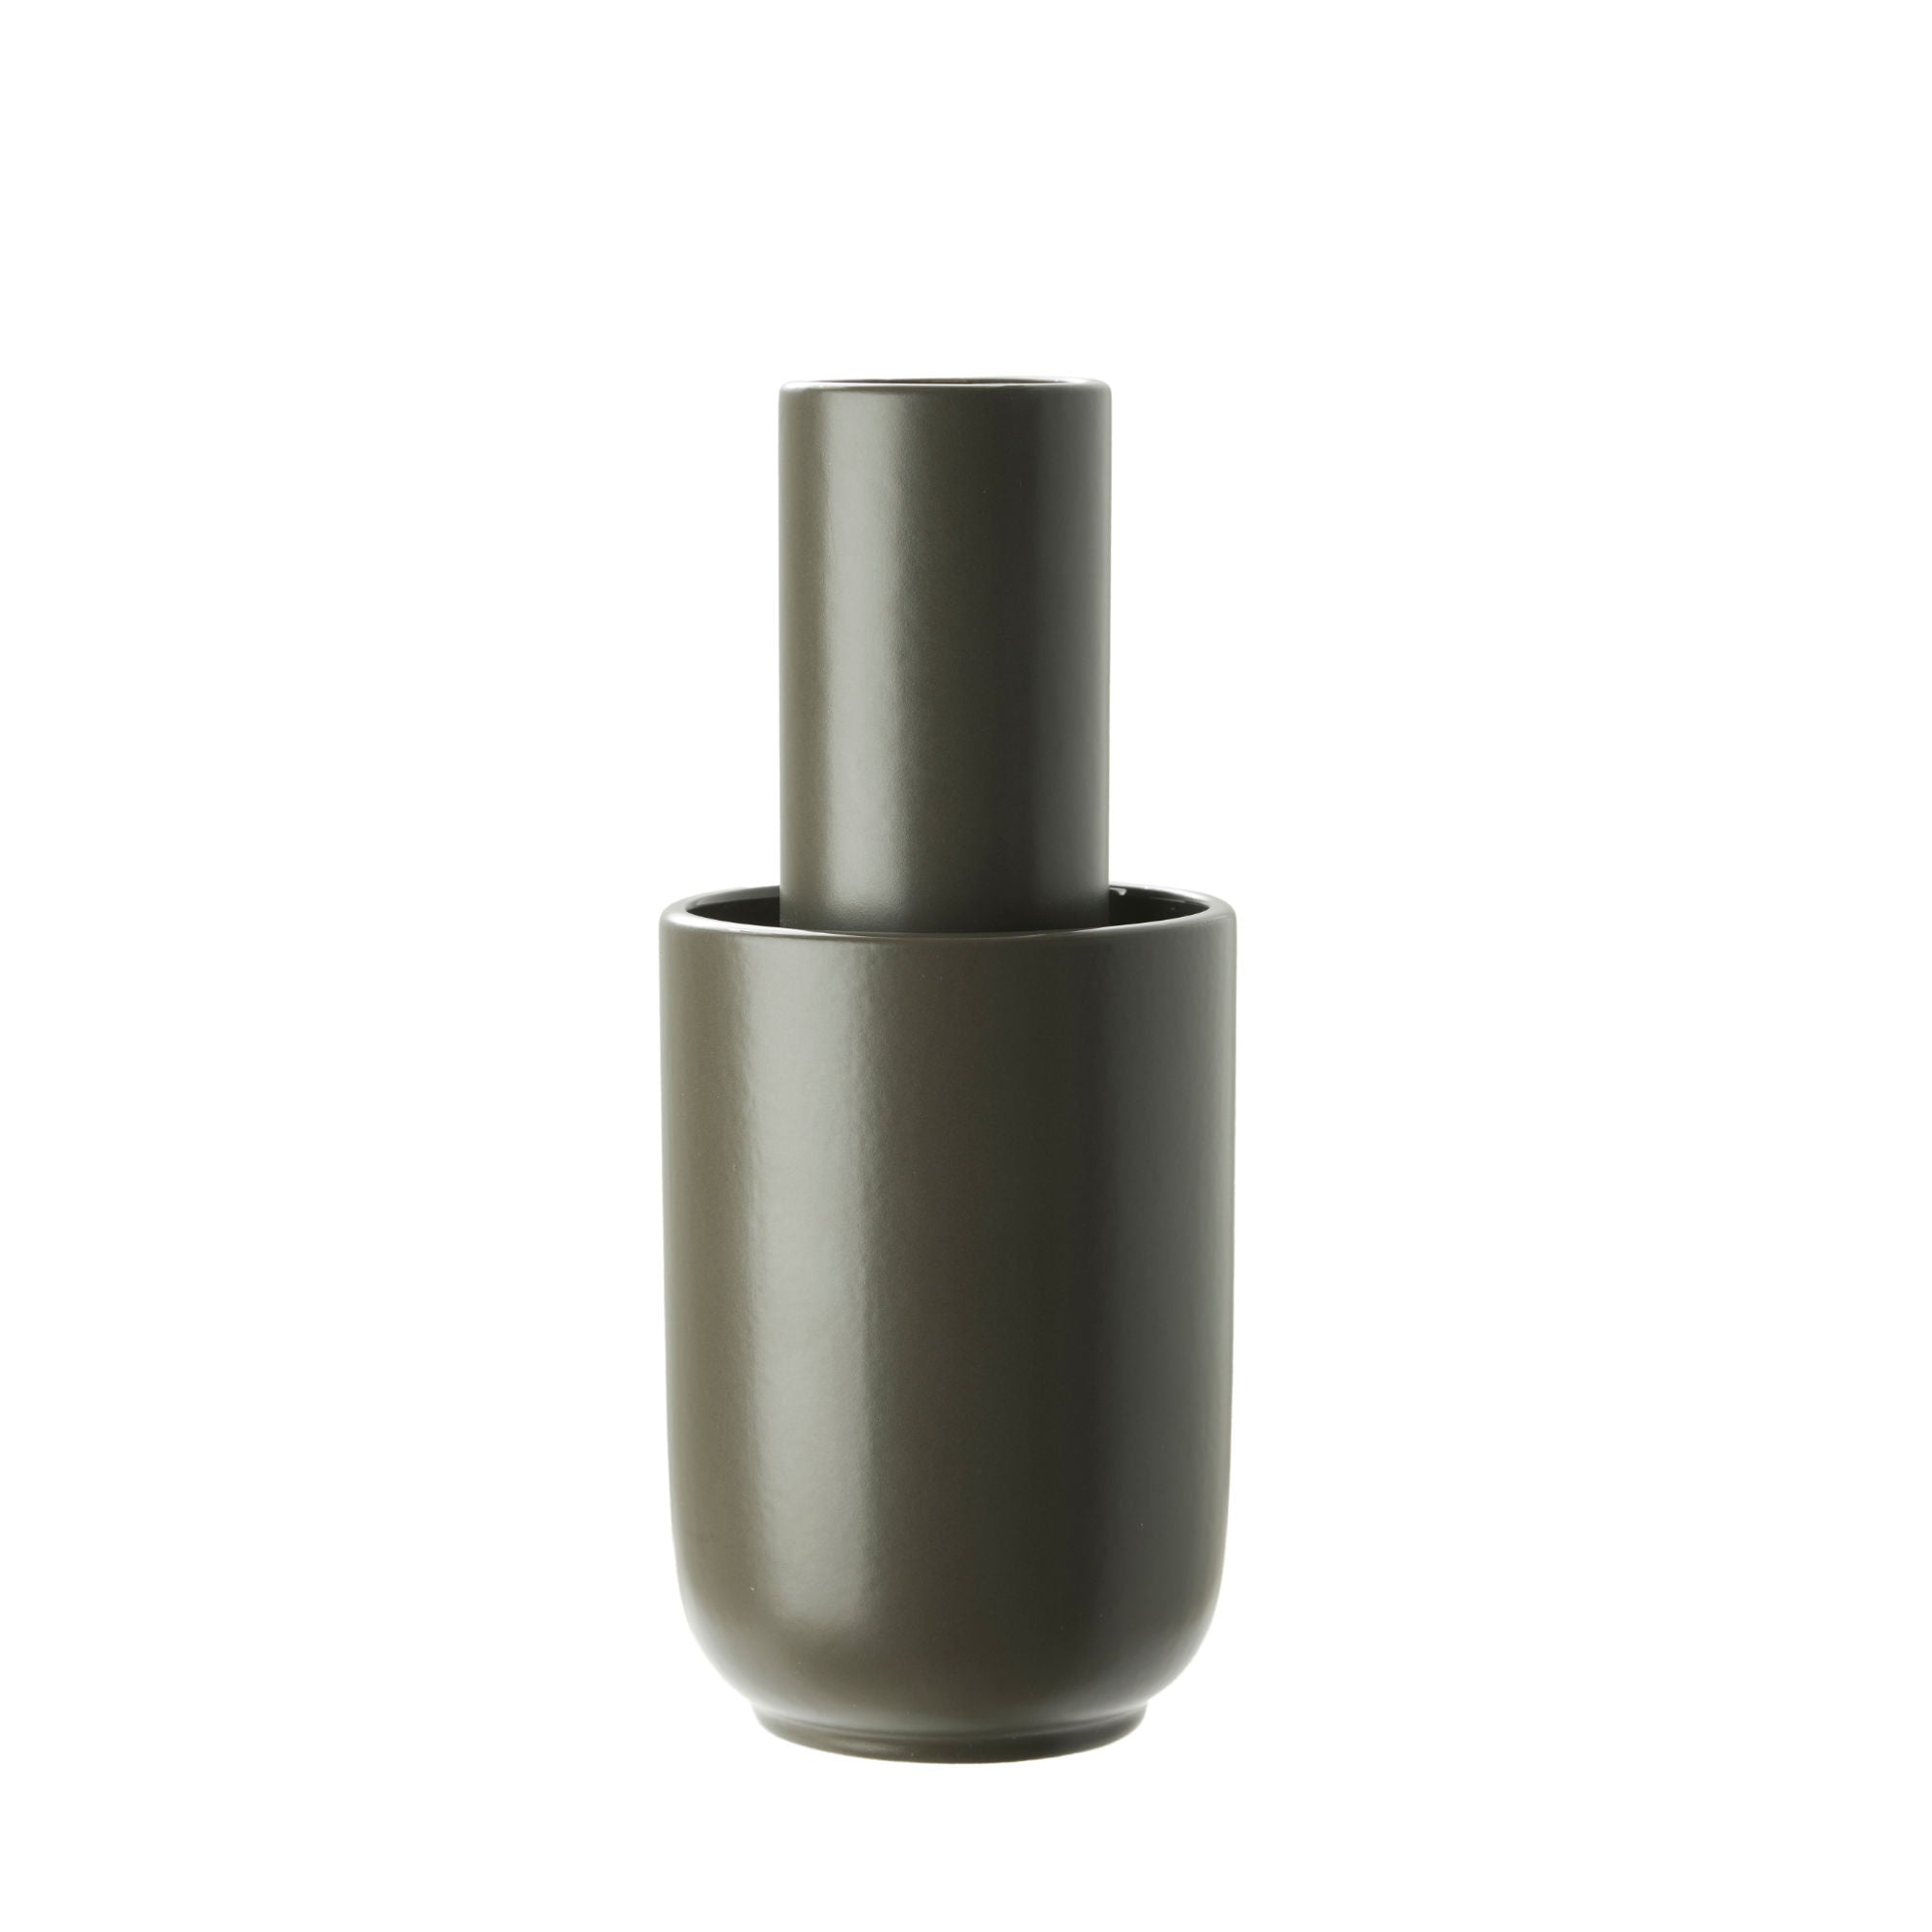 Woud Amel Vase Medium , Taupe Glazed